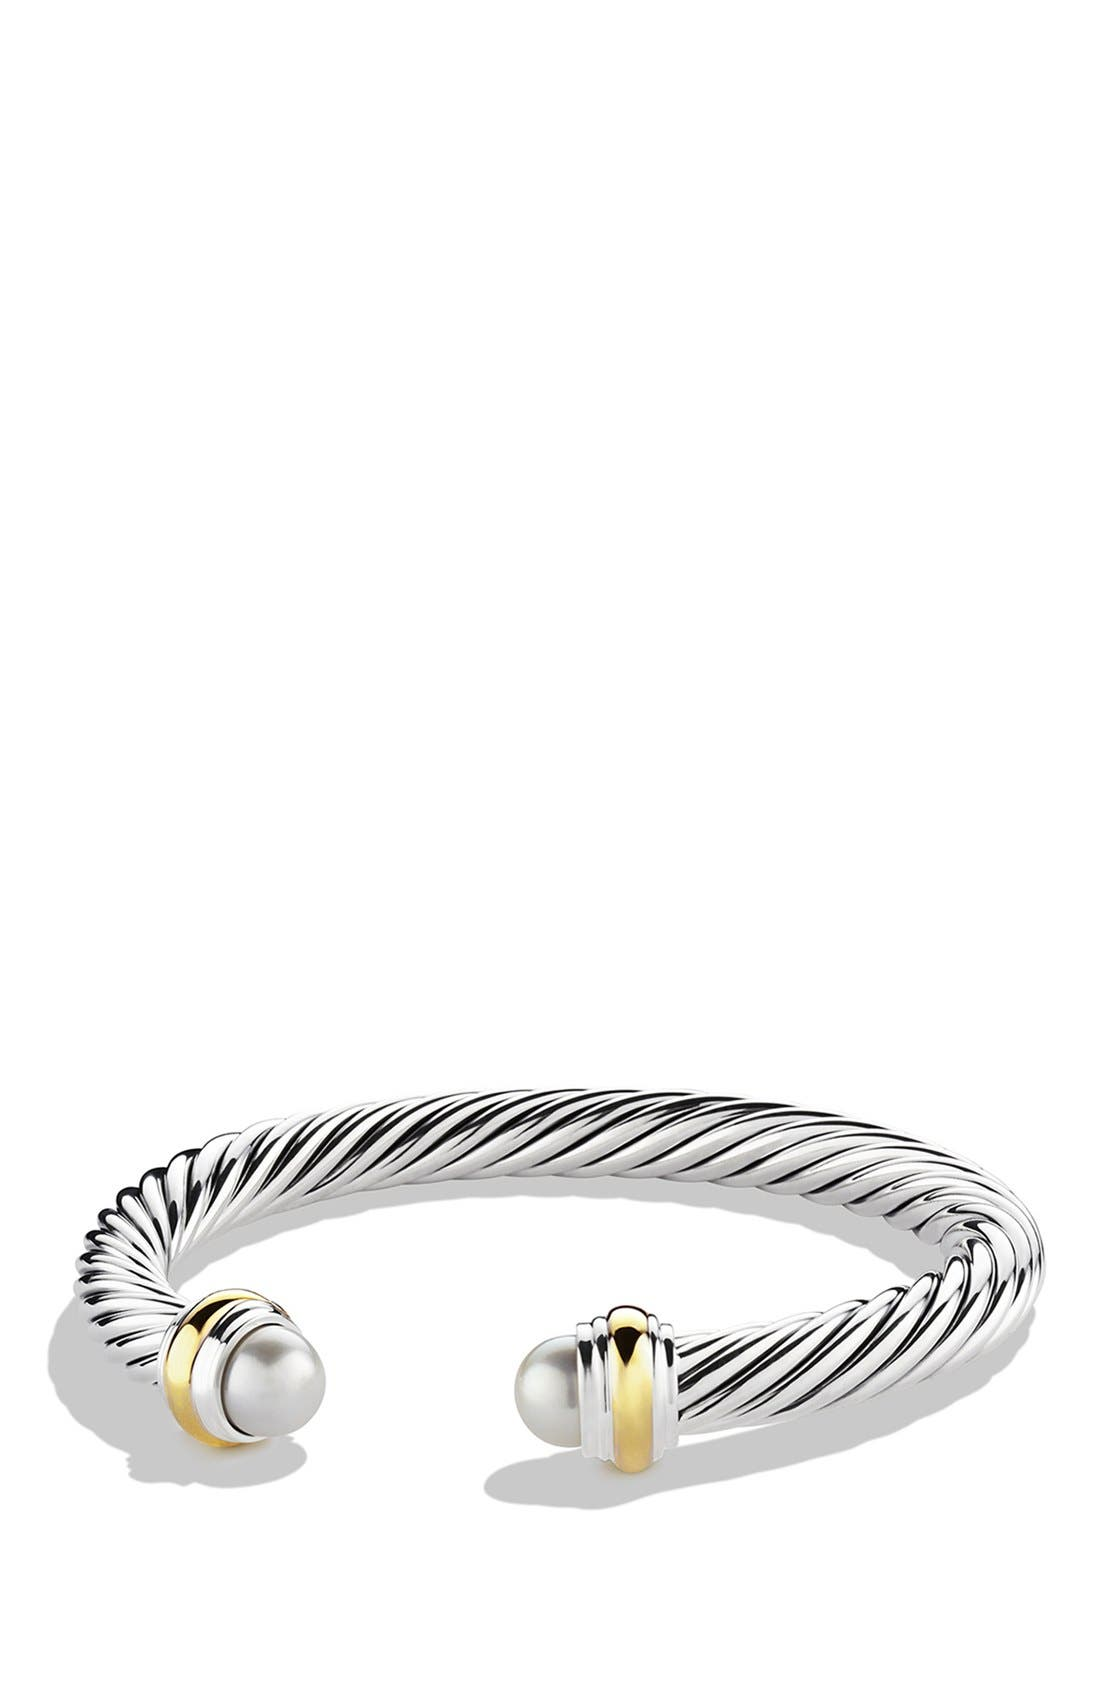 Main Image - David Yurman Cable Classics Bracelet with Semiprecious Stones